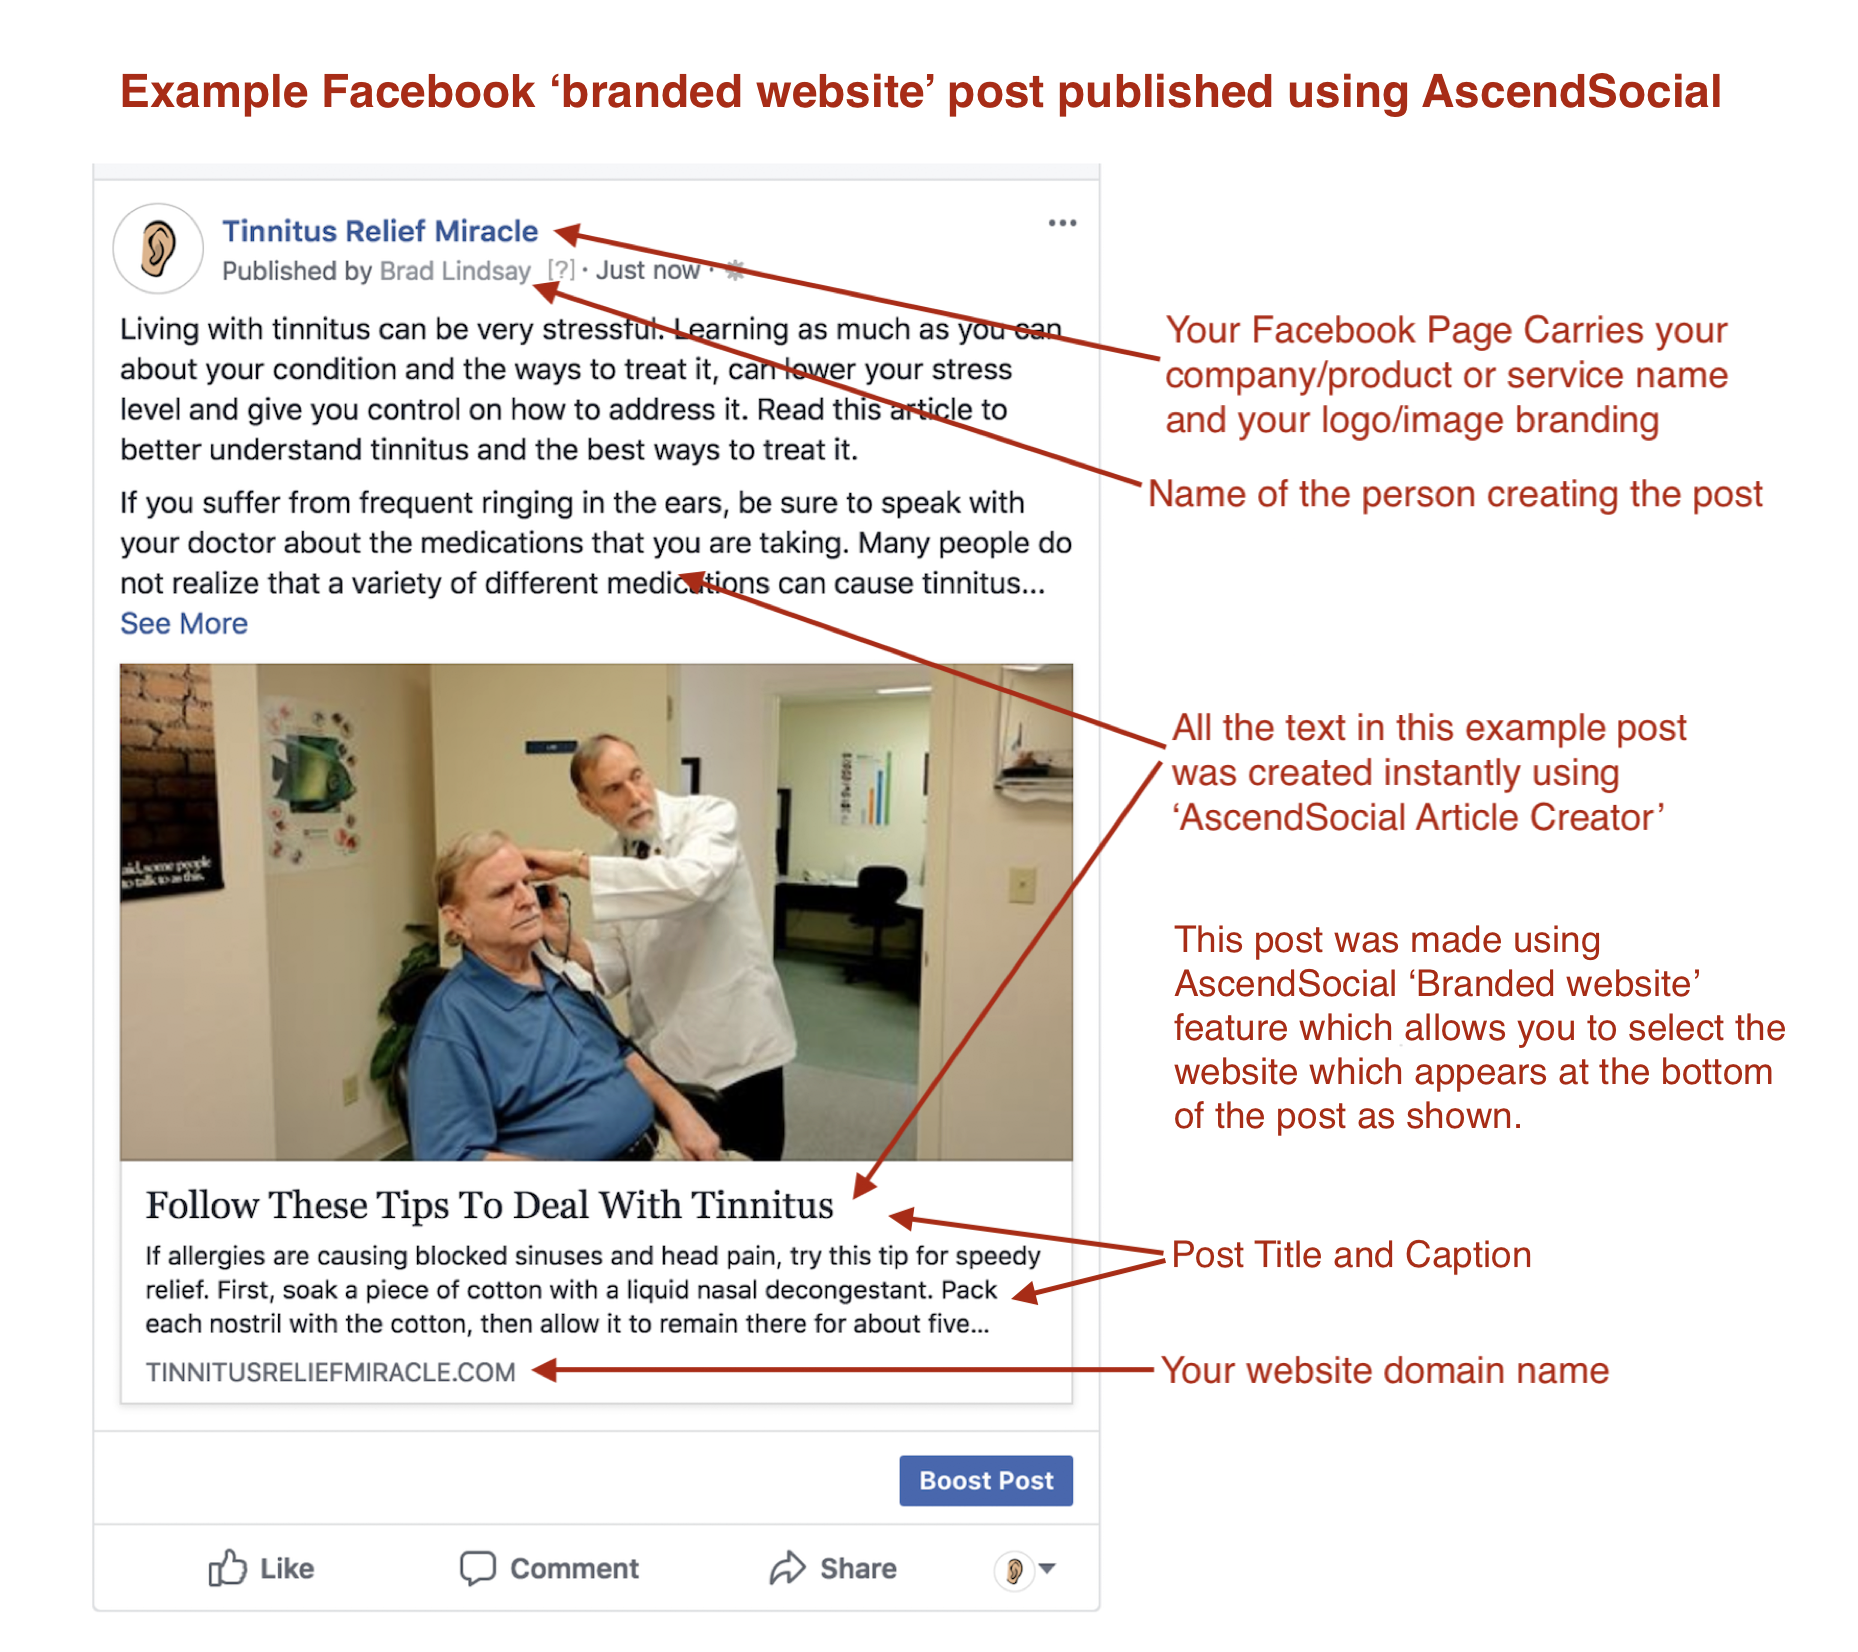 AscendSocial Facebook Branded Website Posting Example